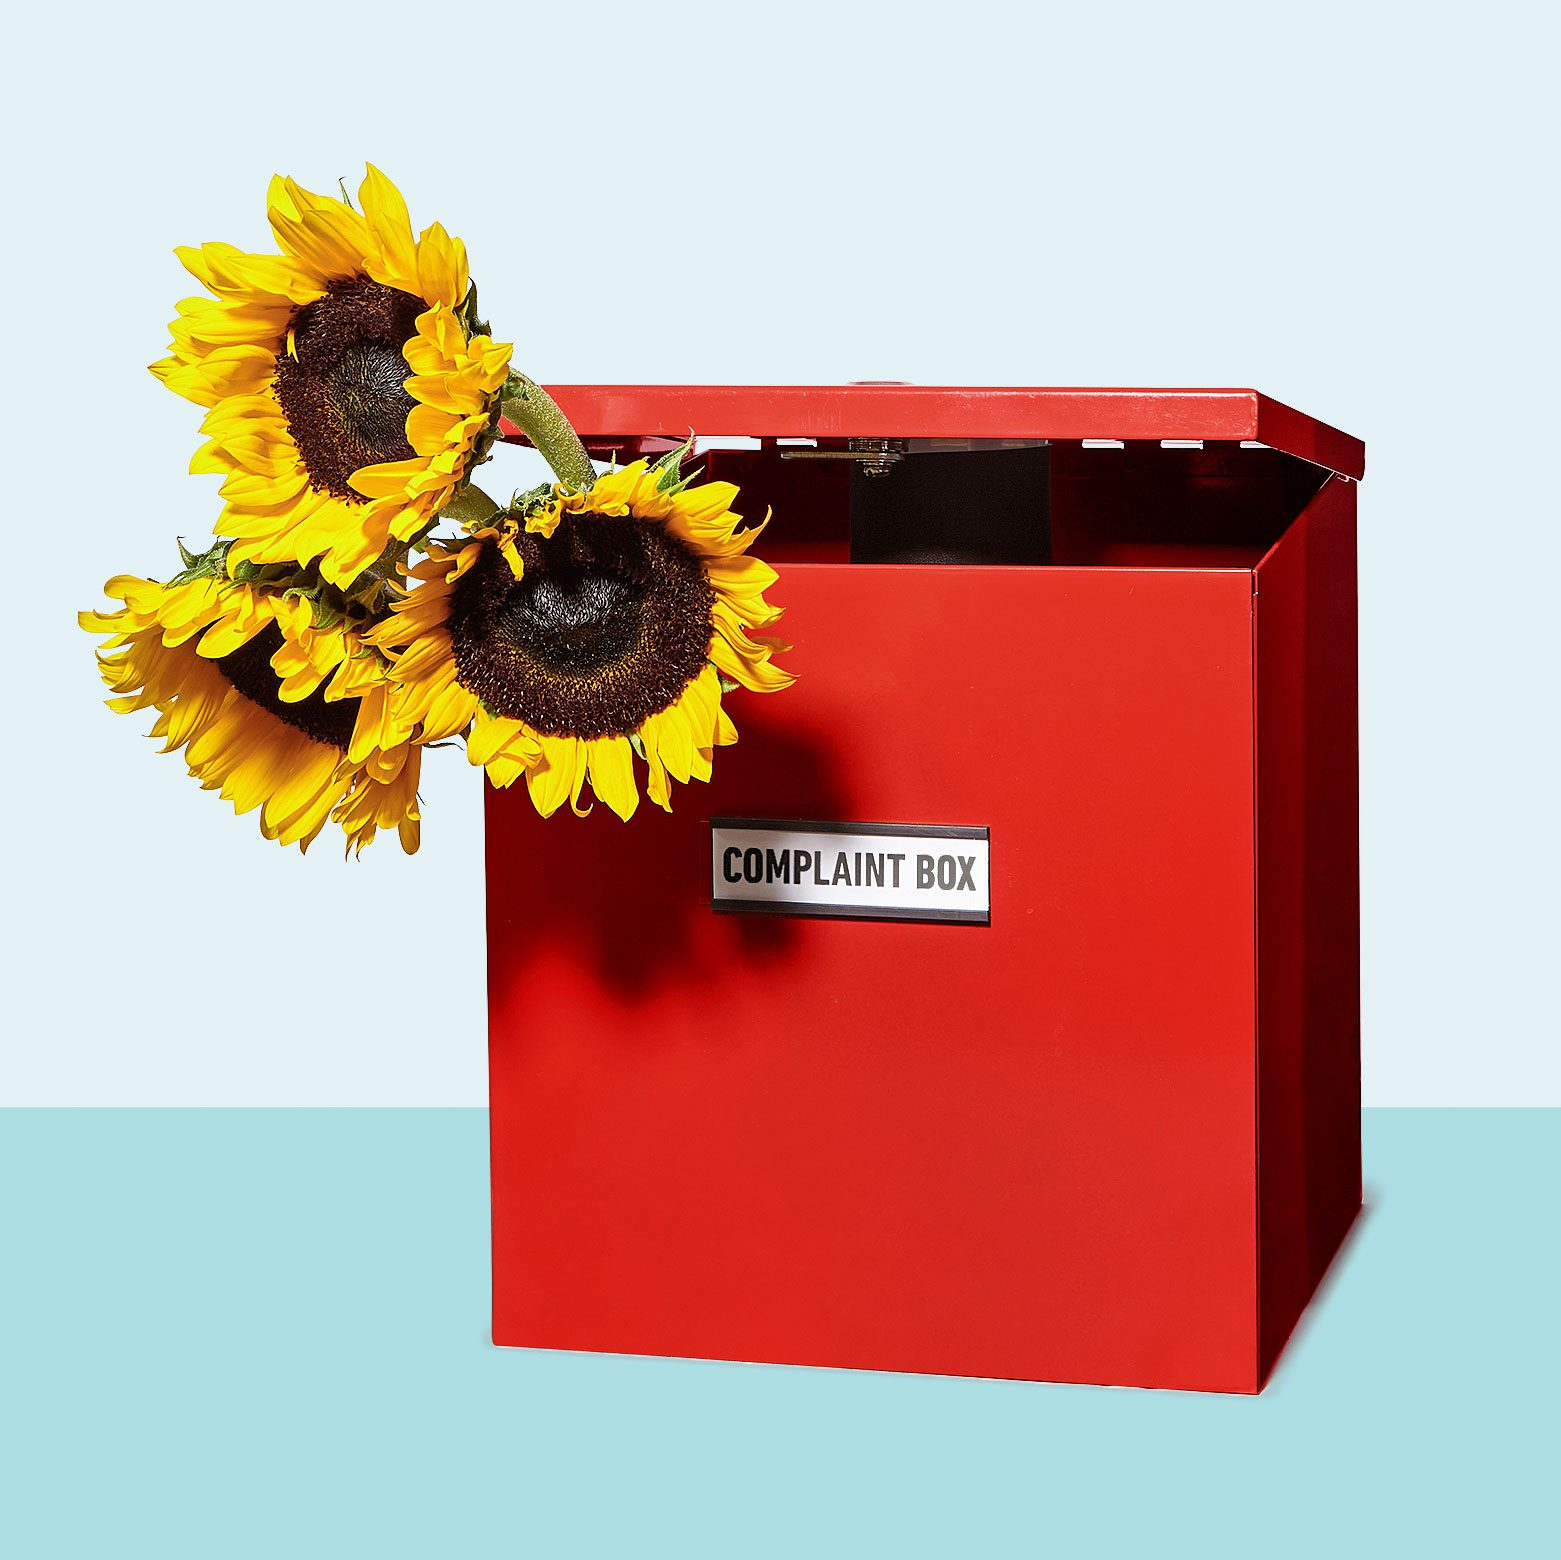 red complaint box with a bundle of sunflowers sticking out